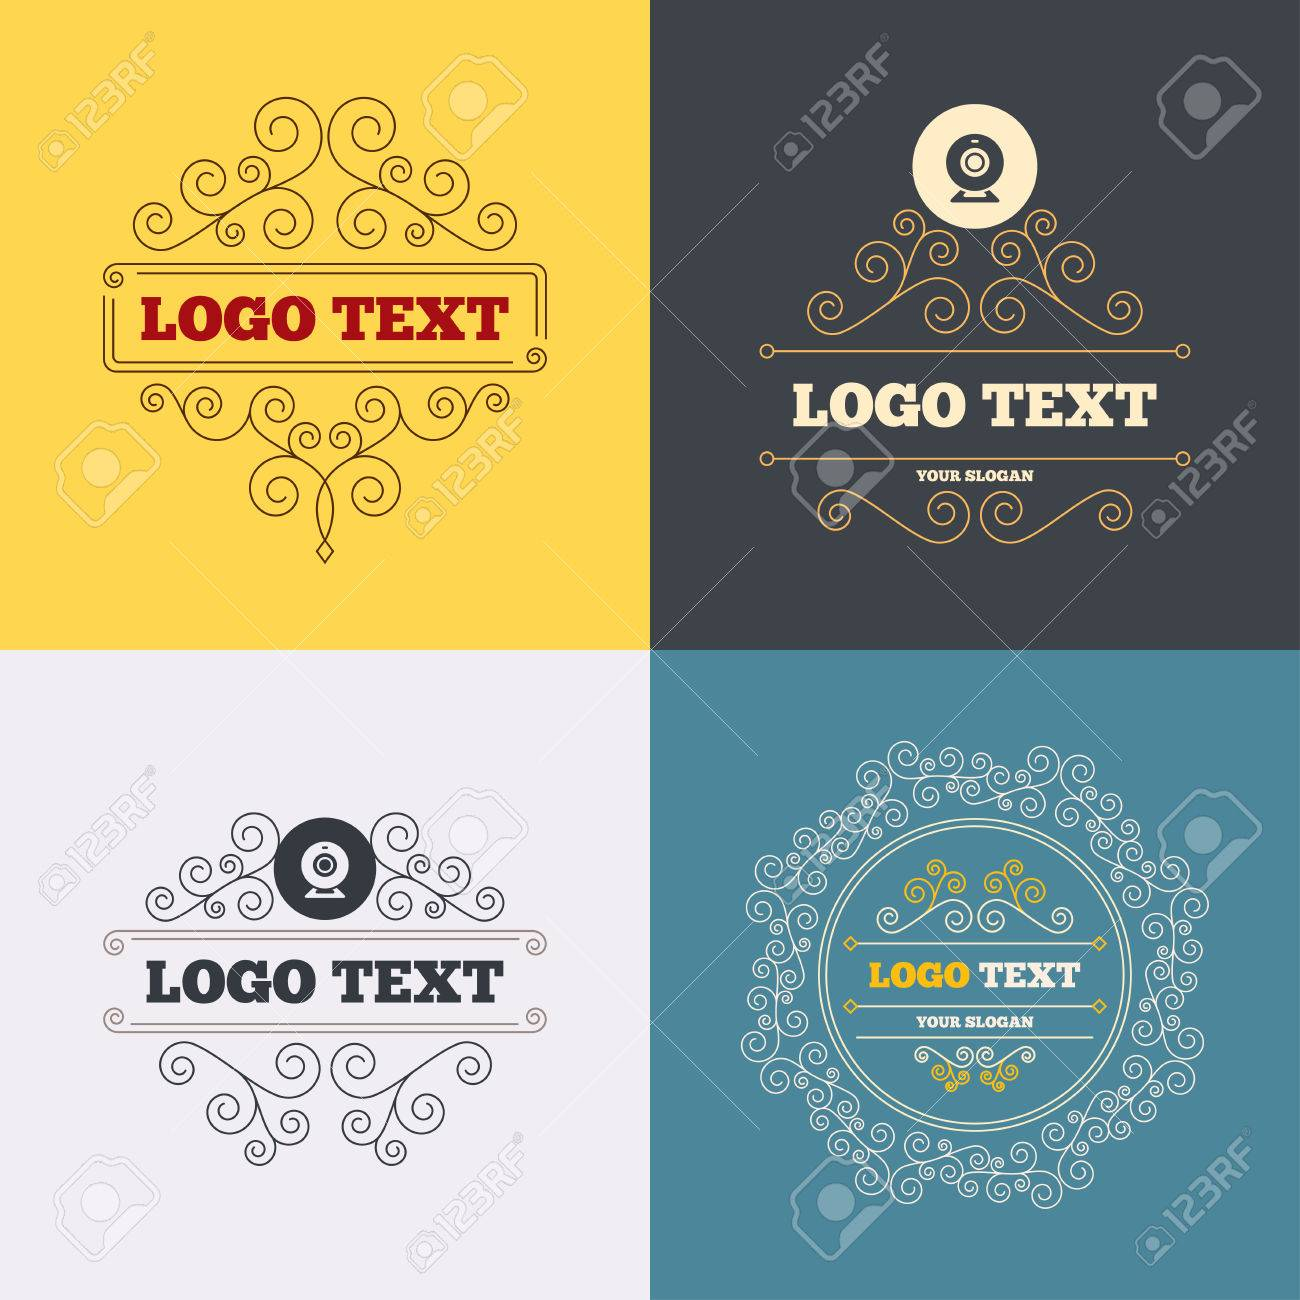 Vintage Flourishes Calligraphic Webcam Sign Icon Web Video Royalty Free Cliparts Vectors And Stock